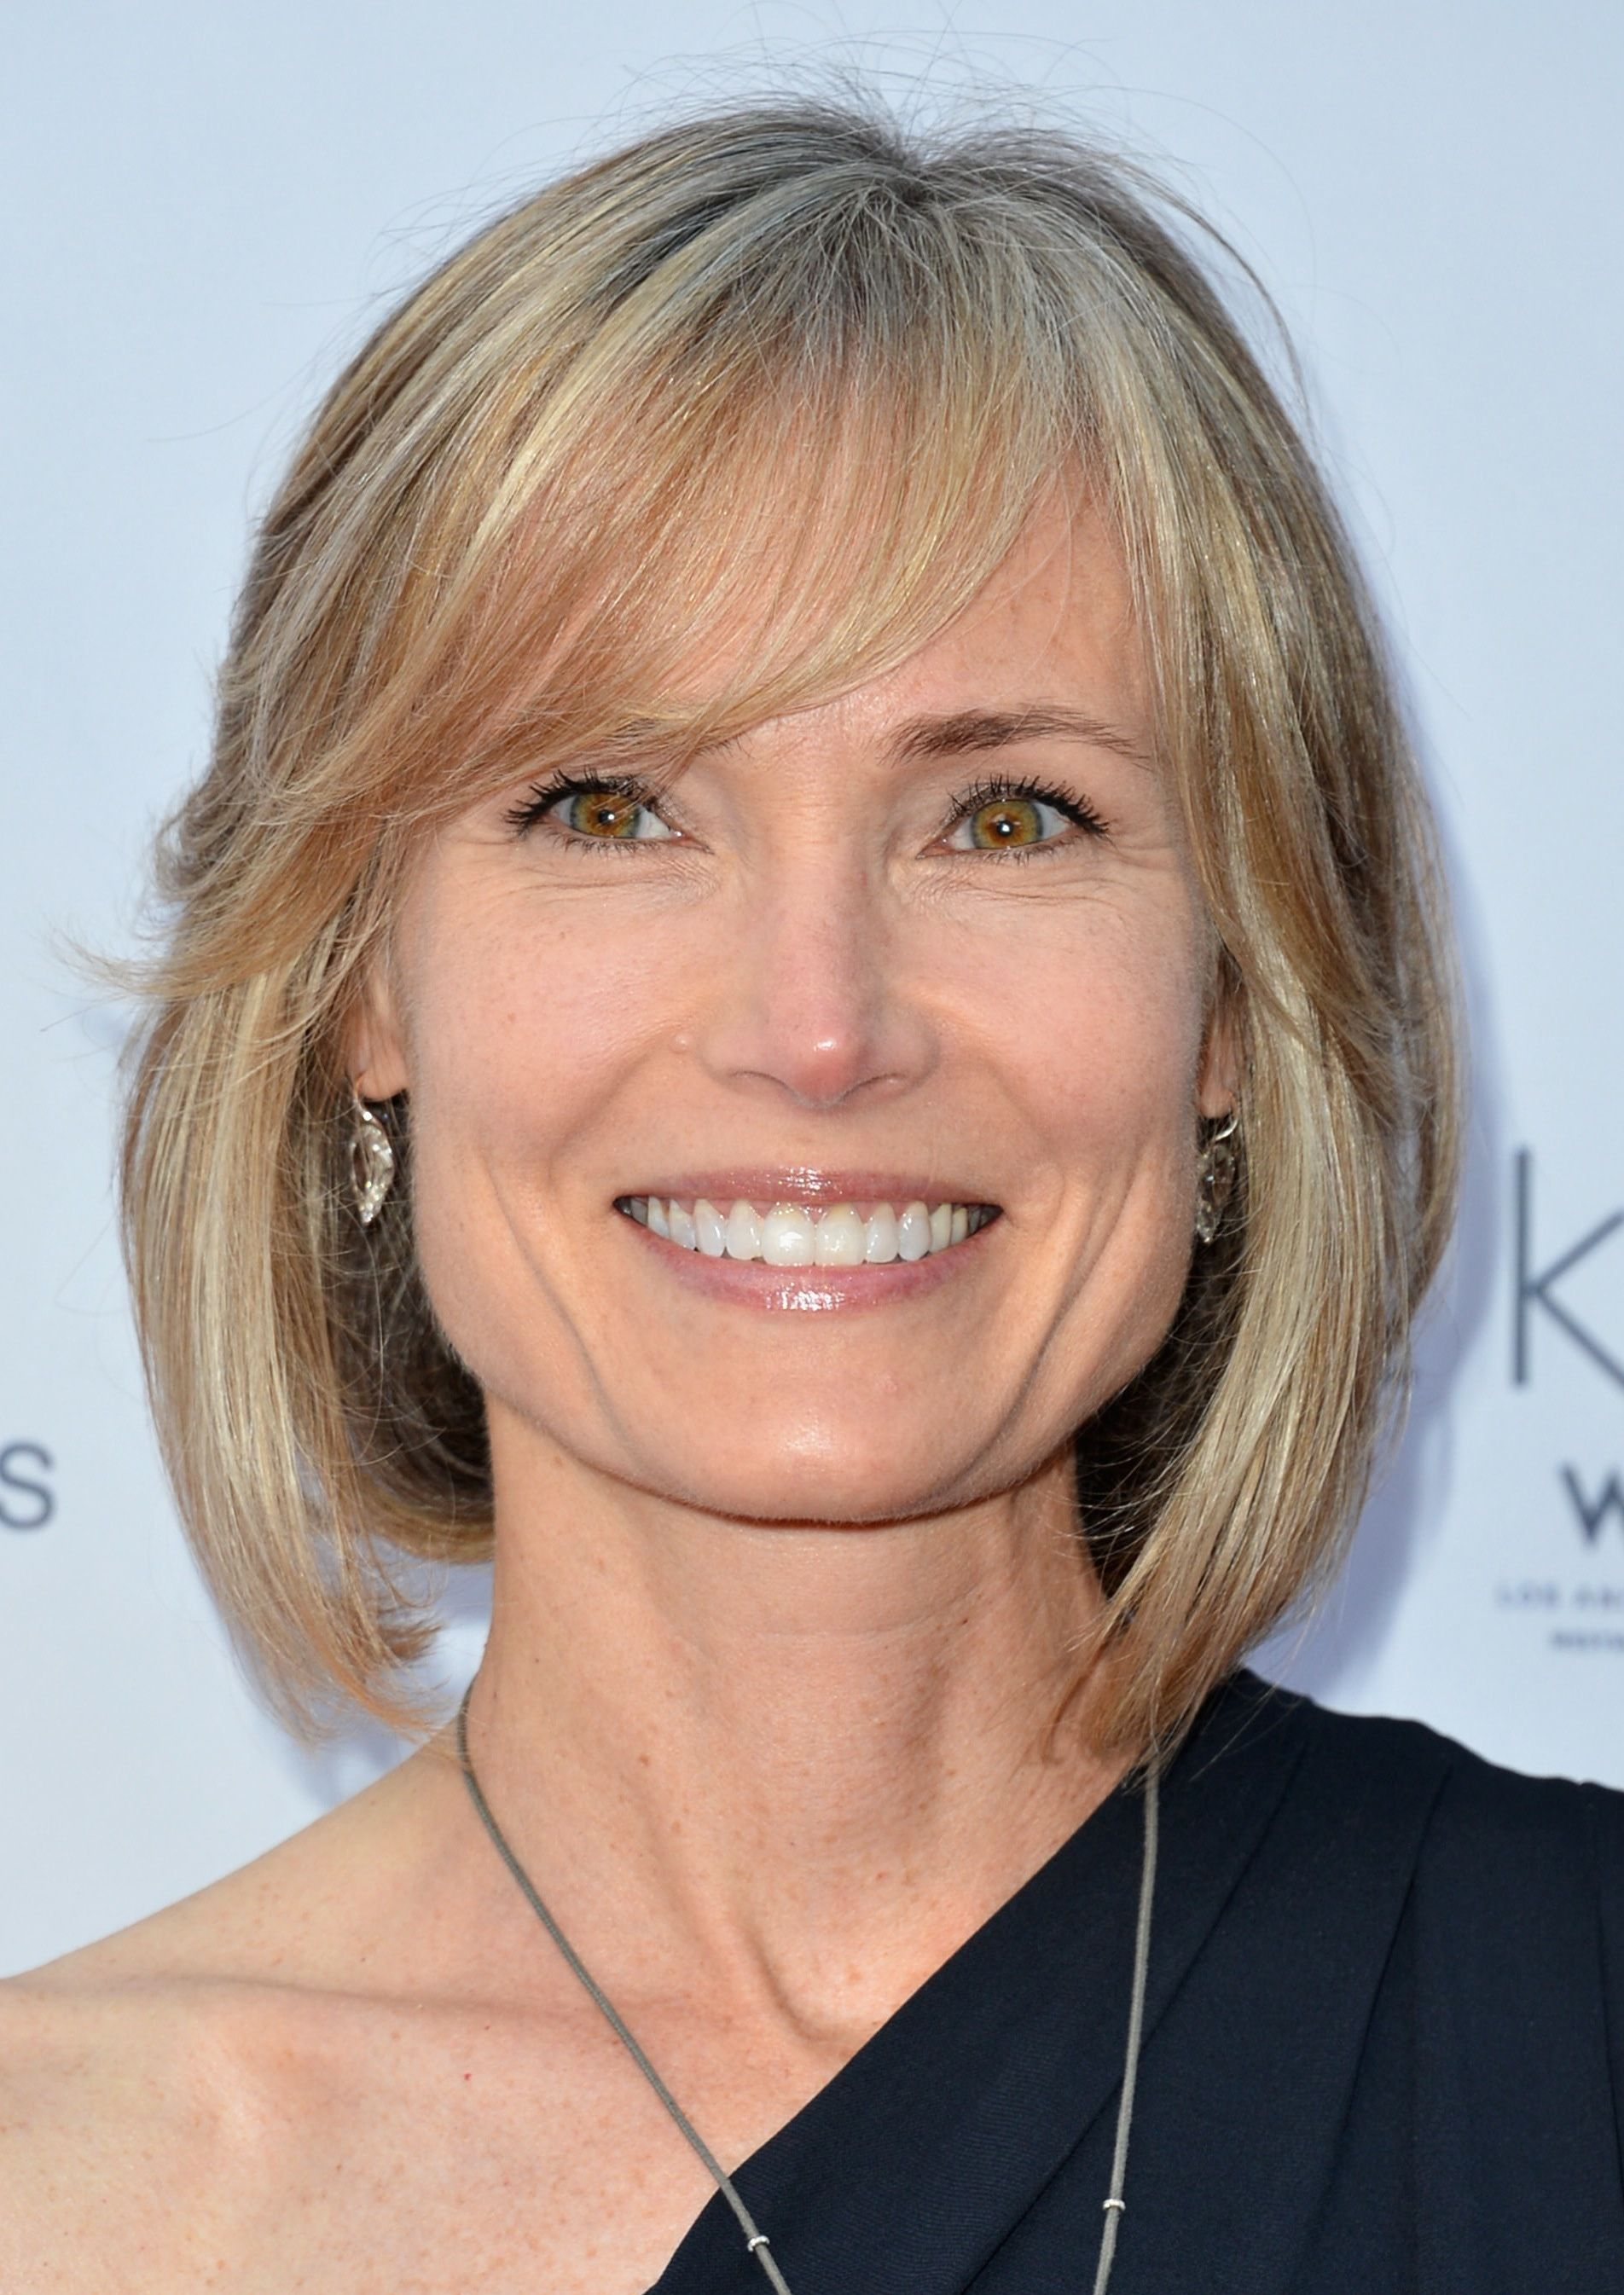 42+ Haircuts with bangs for older women ideas in 2021